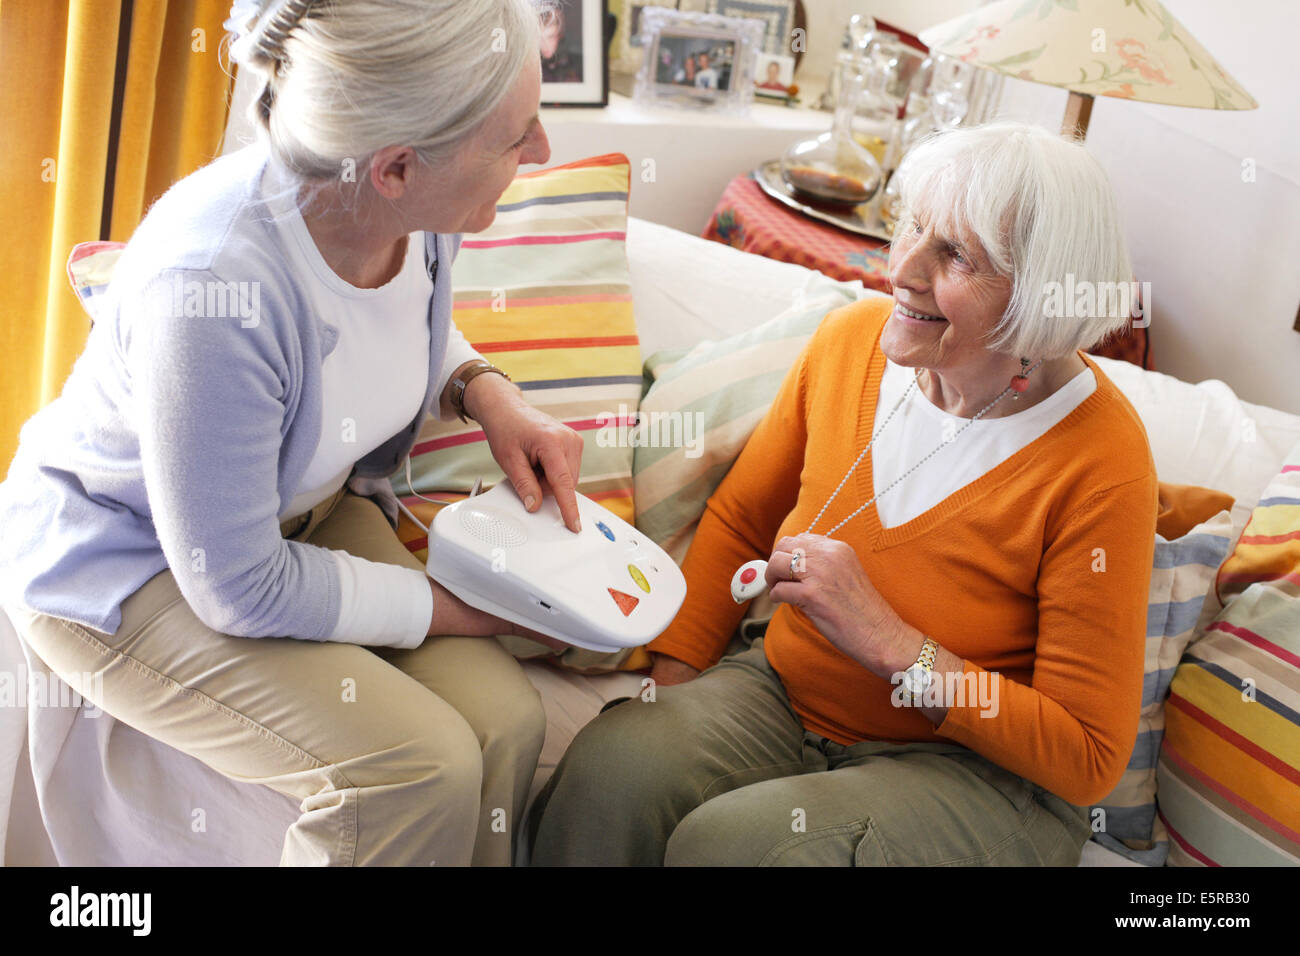 Emergency call button, elderly woman wearing a remote assistance unit at home. - Stock Image